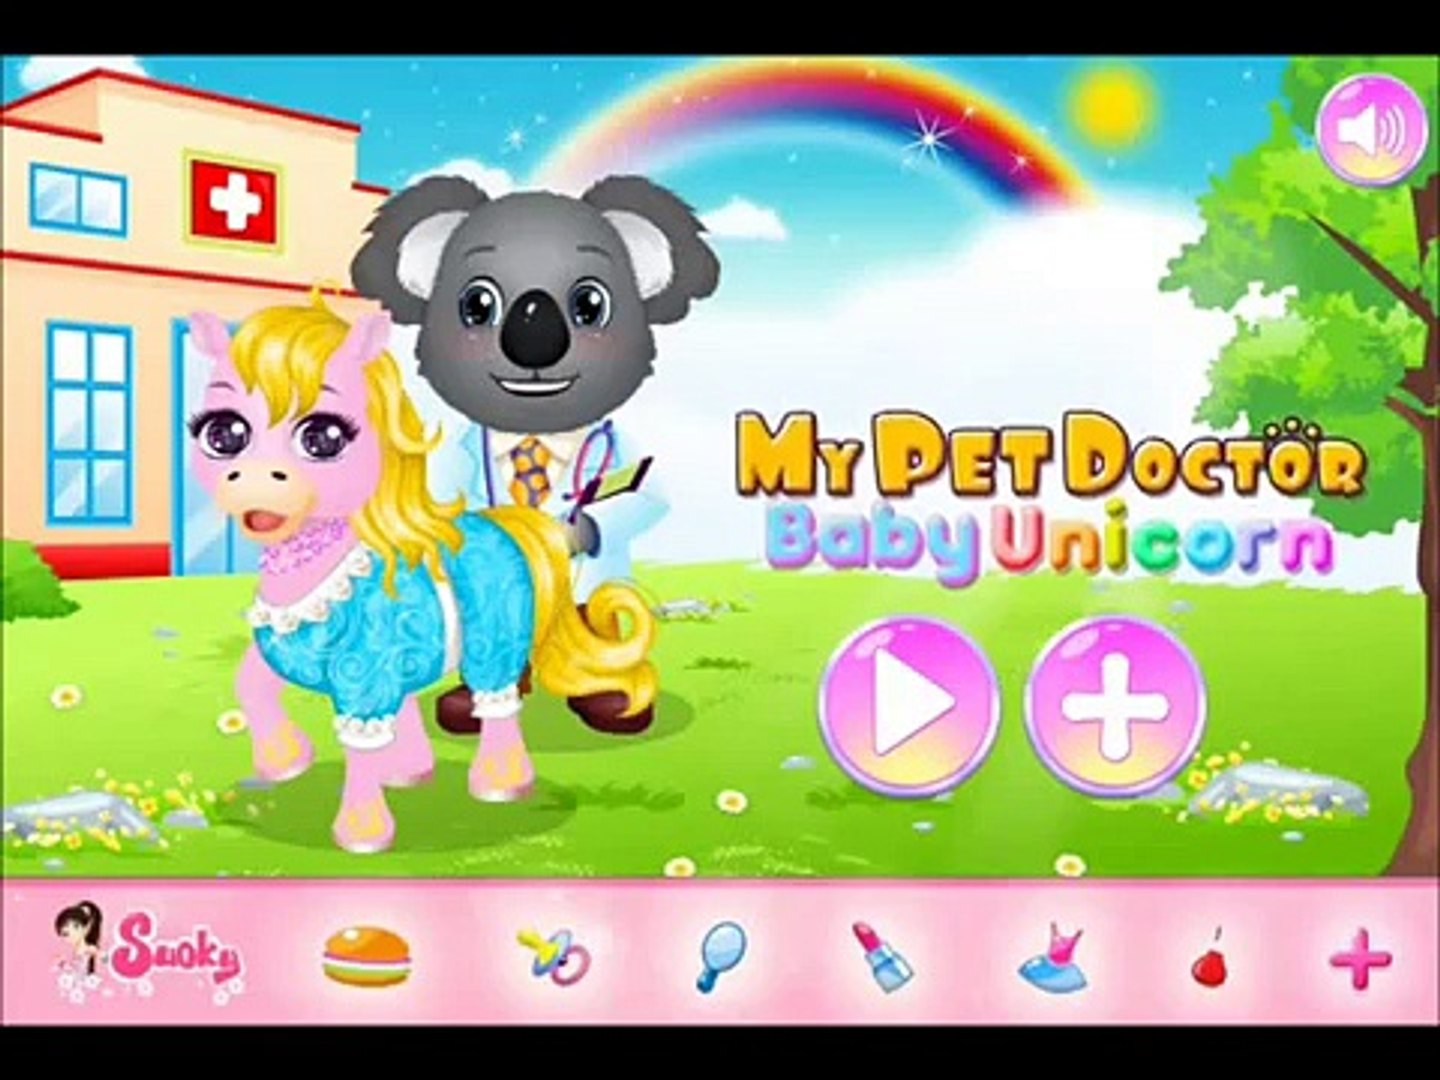 Baby Doctor Caring Games-My Pet Doctor Baby Unicorn Video Play-Cute Baby Pet Games